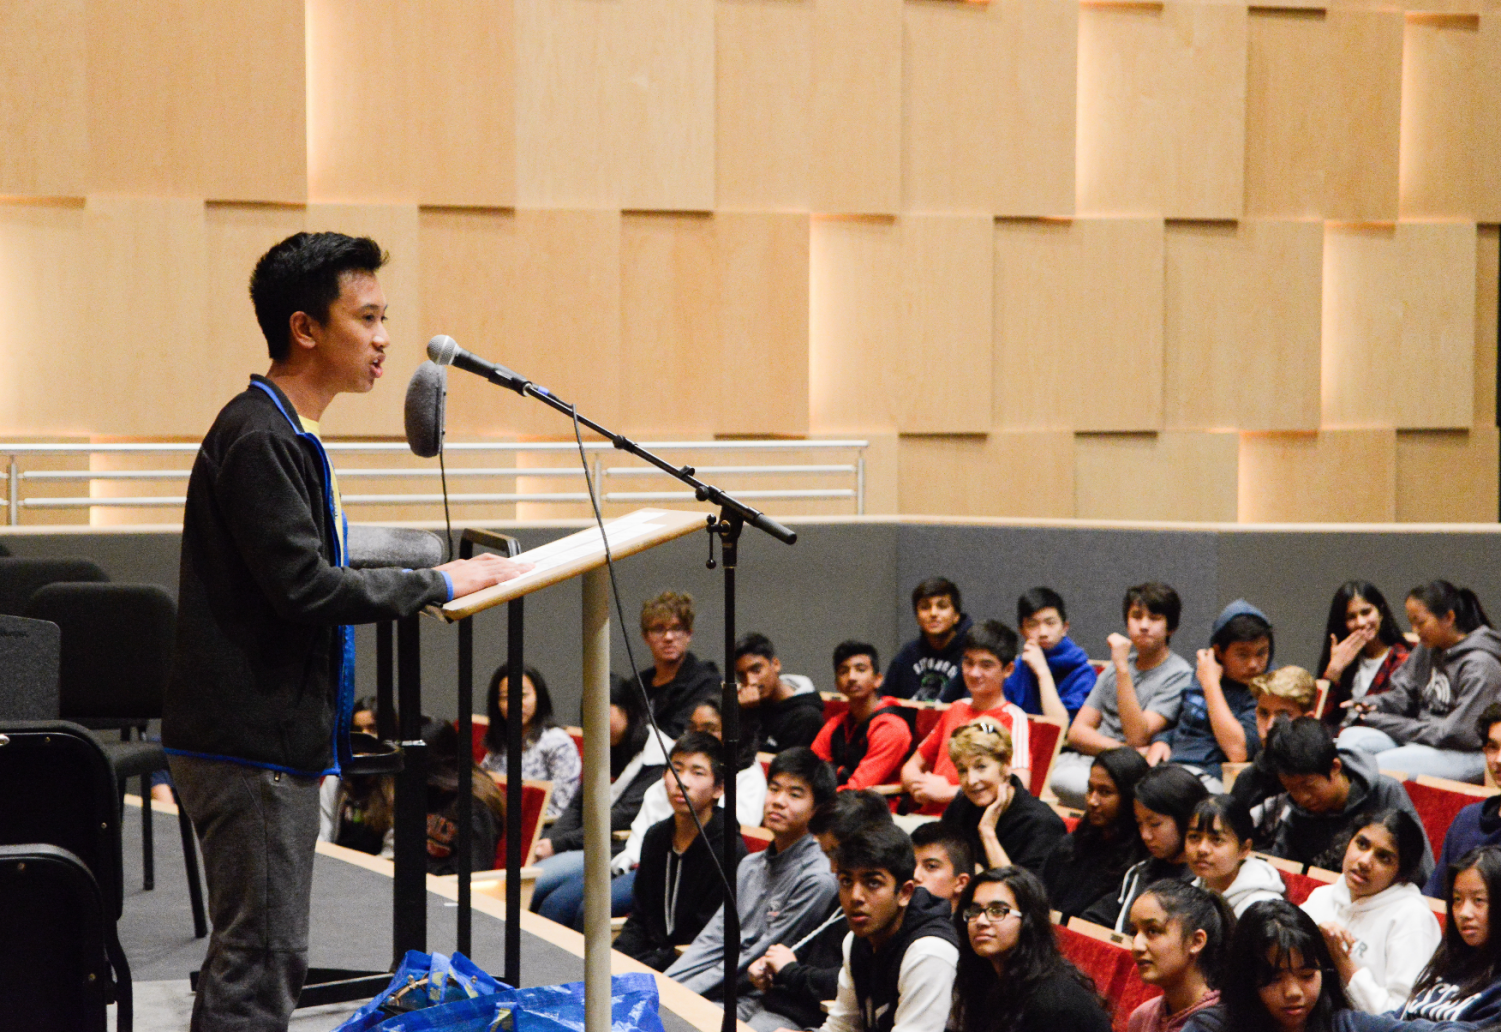 Newly elected freshman class council member Kris Estrada (9) addresses his class at freshman election speeches on Monday. This freshman class inaugurated a new system of elections in which students voted for general class representatives as opposed to specific positions.